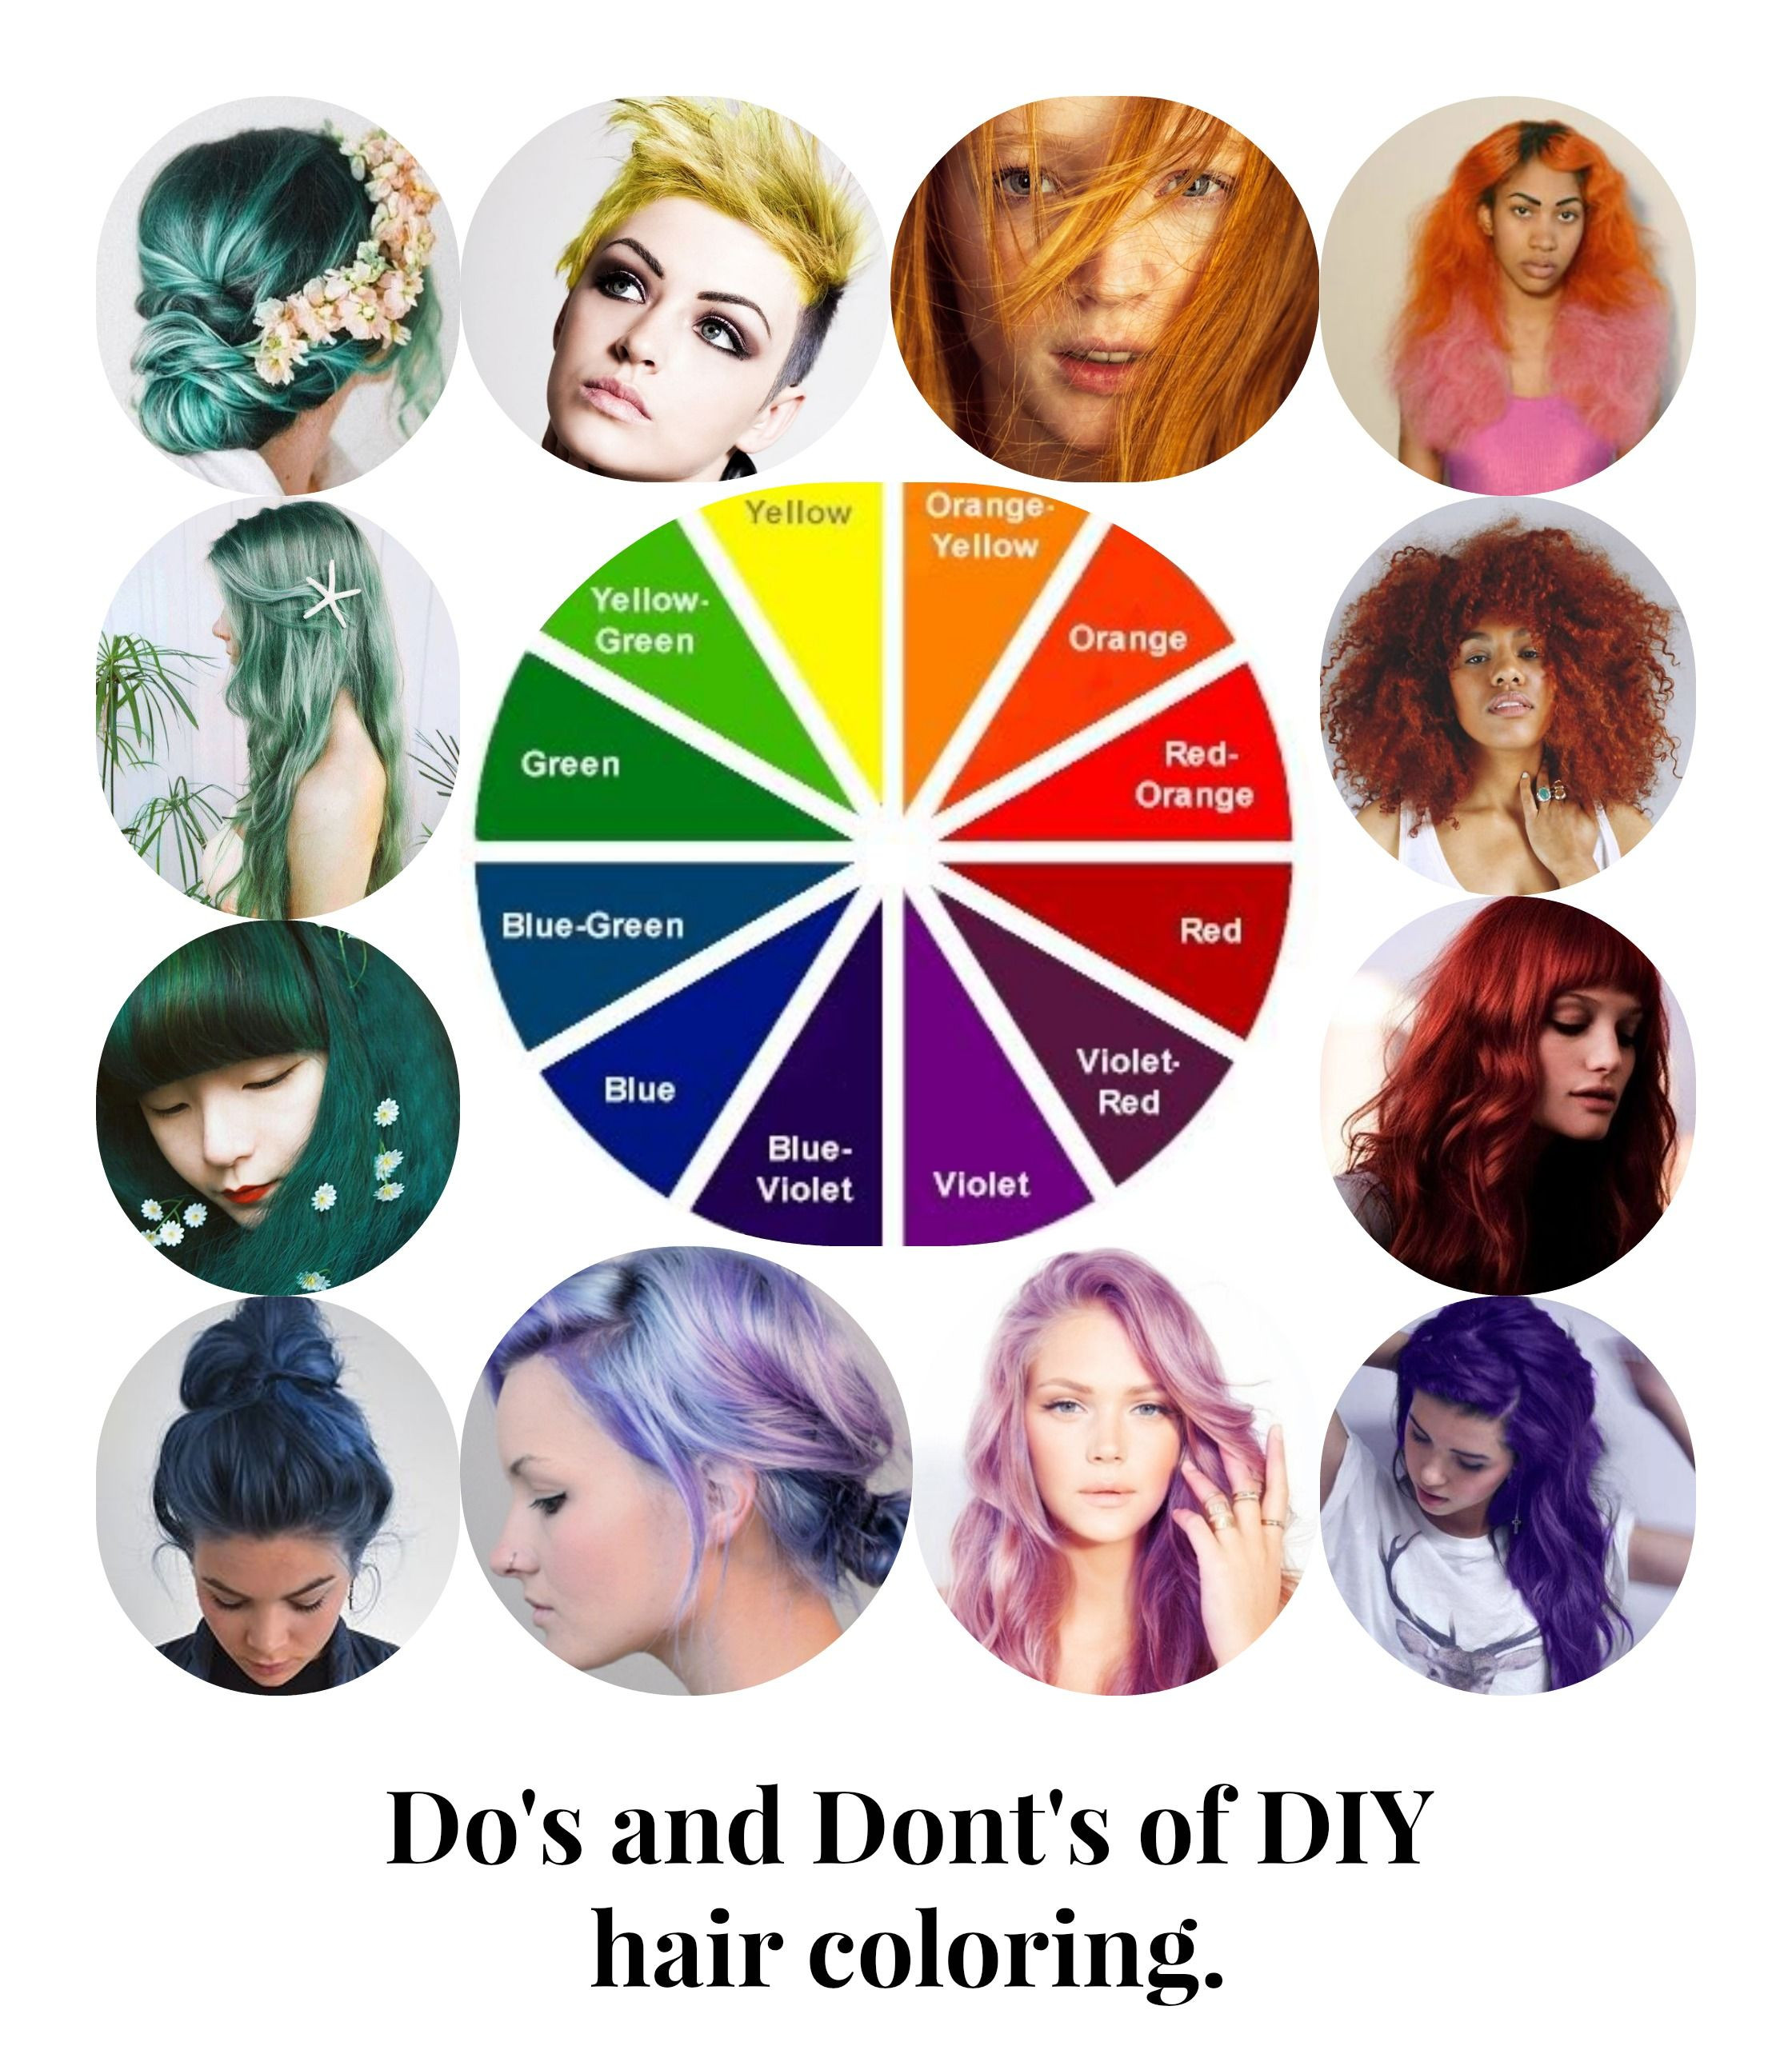 DIY Dyeing Hair  dos and dont s of diy hair coloring coiffe